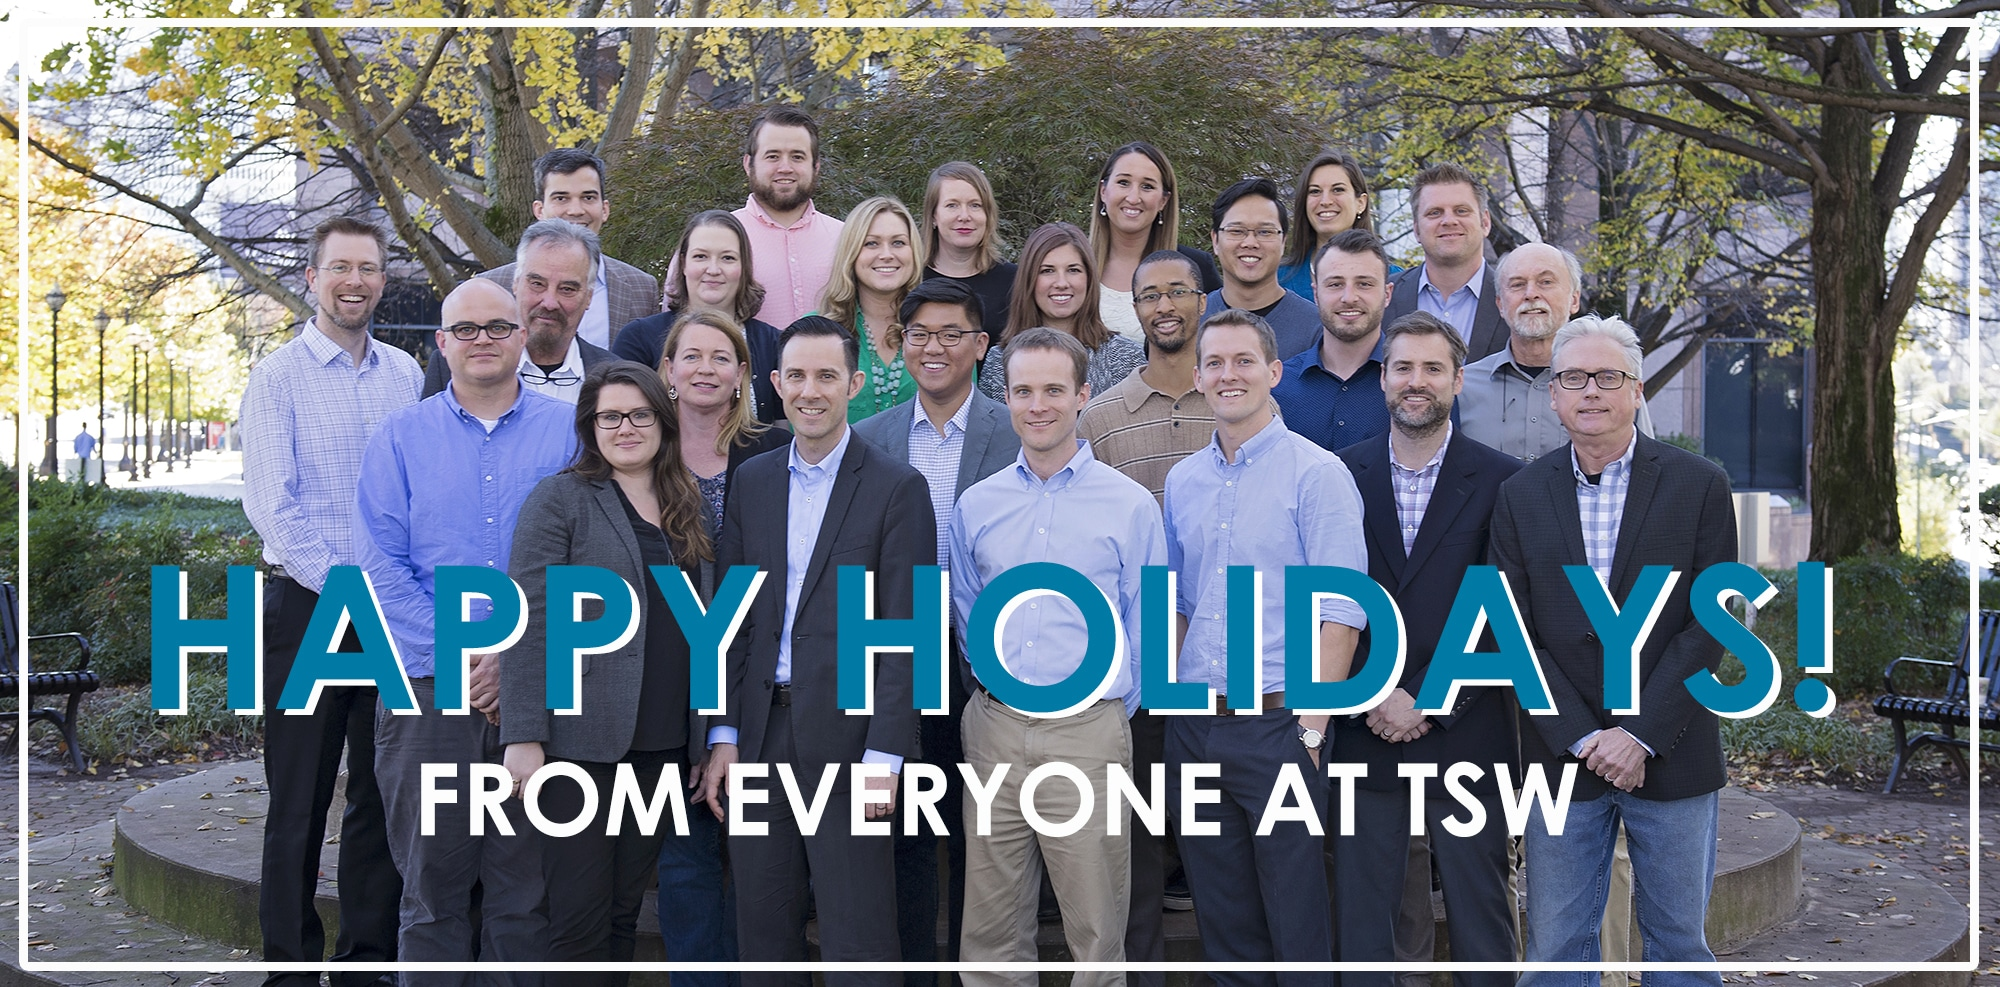 TSW HappyHolidaysfromTSW Happy Holidays from TSW! In The News  Happy Holidays TSW   TSW